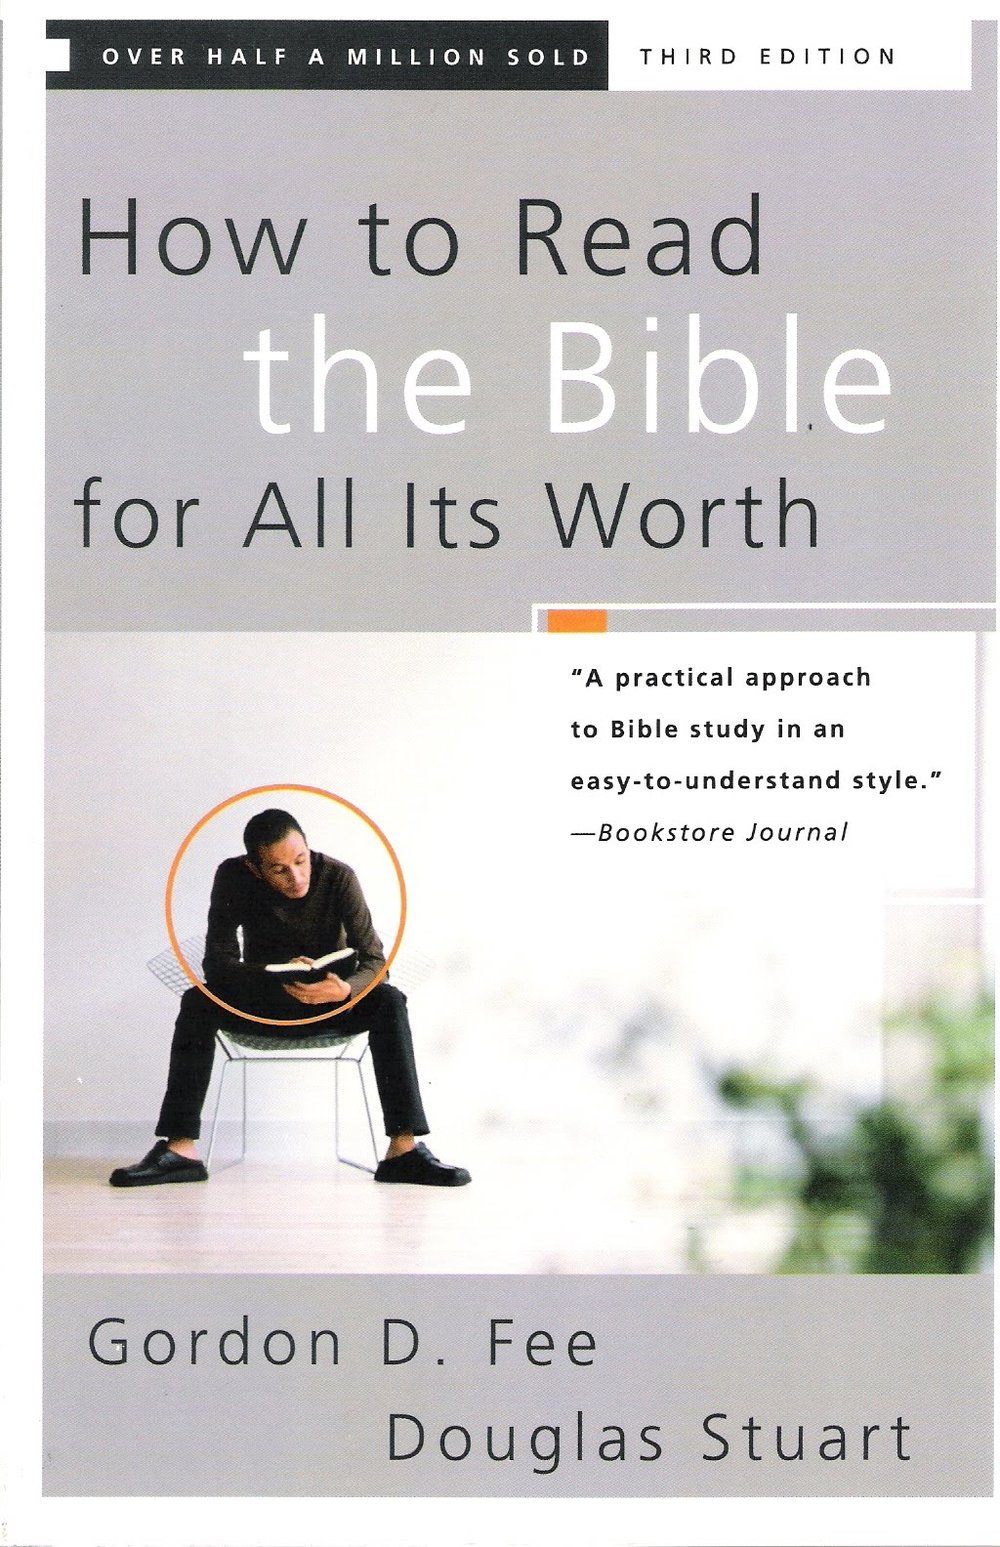 doug-stuart-how-to-read-the-bible-for-all-its-worth.jpg